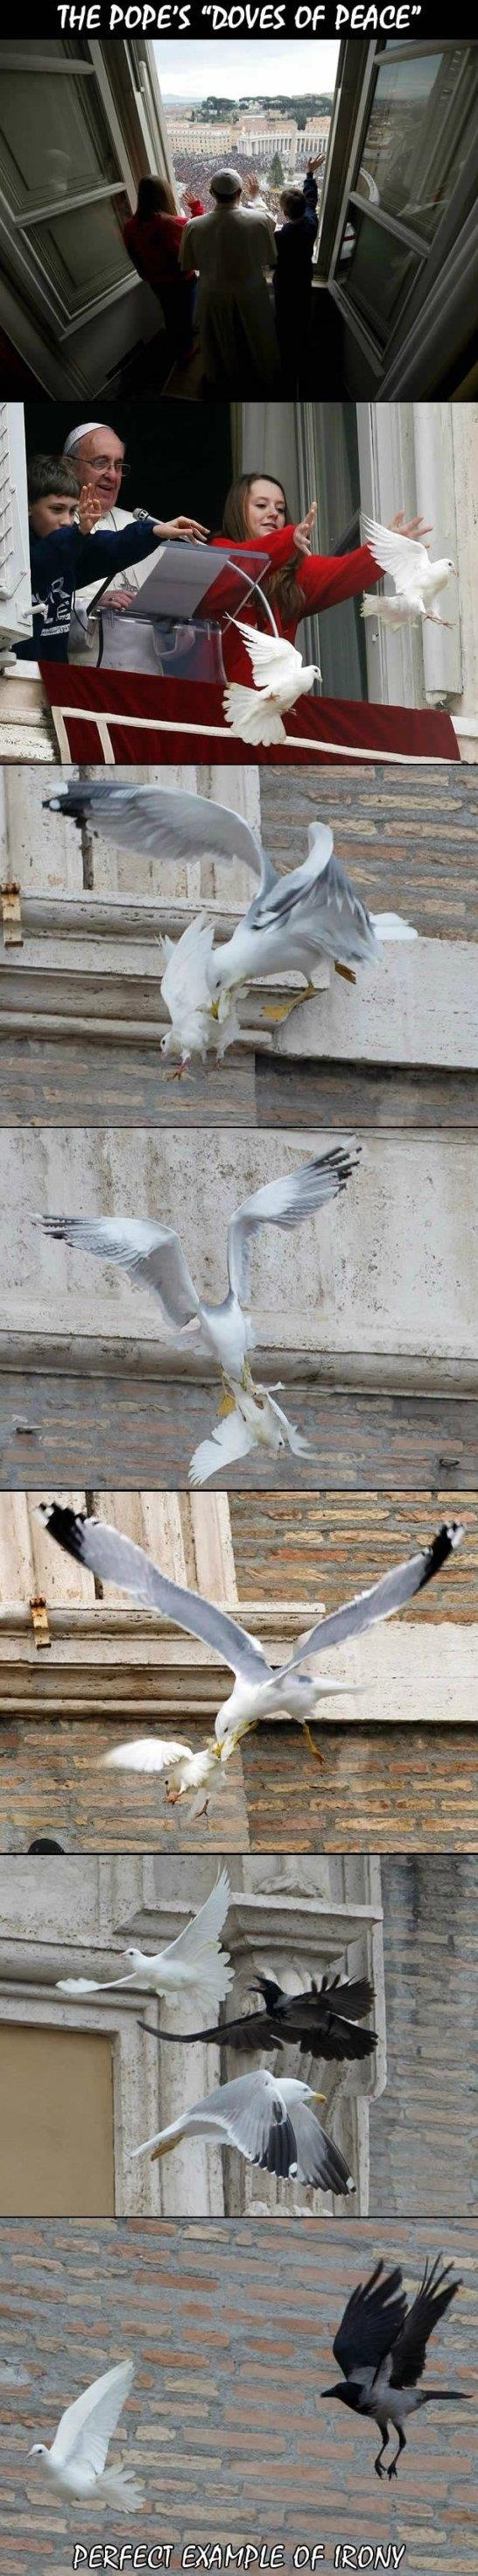 Popes dove of peace